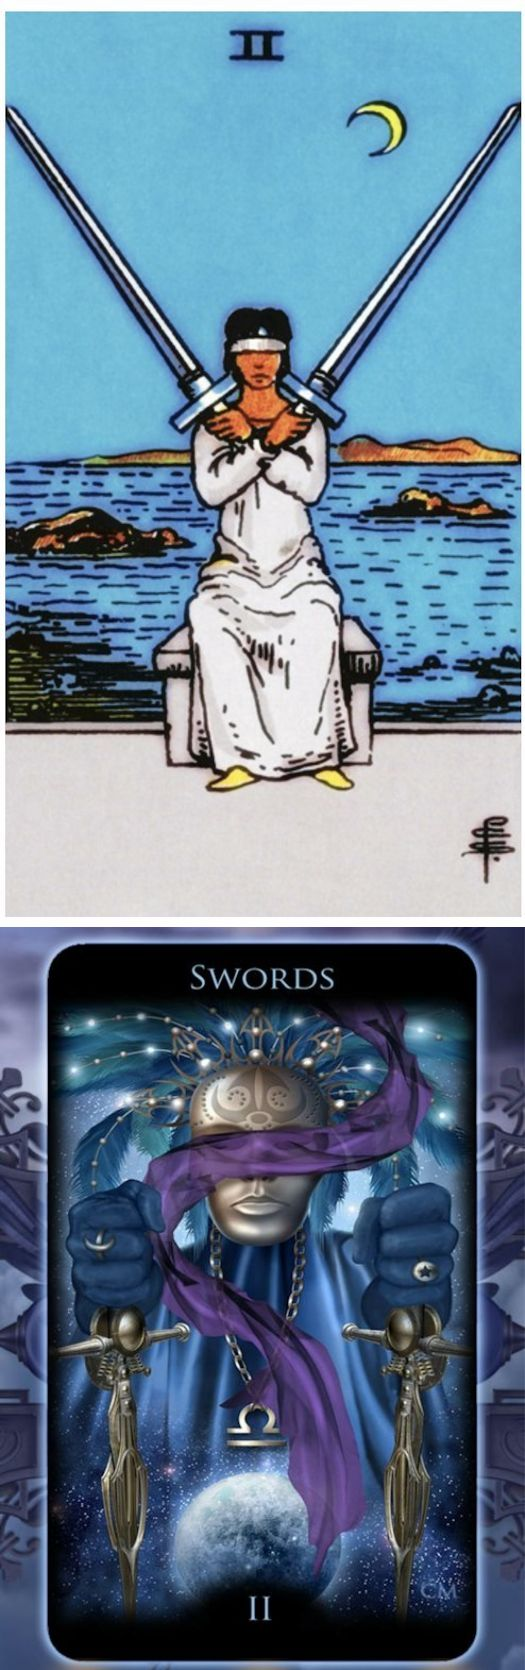 Two of Swords: no clear choice and both choices end in suffering (reverse). Rider Tarot deck and Legacy Tarot deck: read my tarot cards online free, tarotjournaling vs free tarot love reading lotus. New tarot reading and pagani zonda. #backtonature #tarotspread #application #ghost #themoon #androidapplication